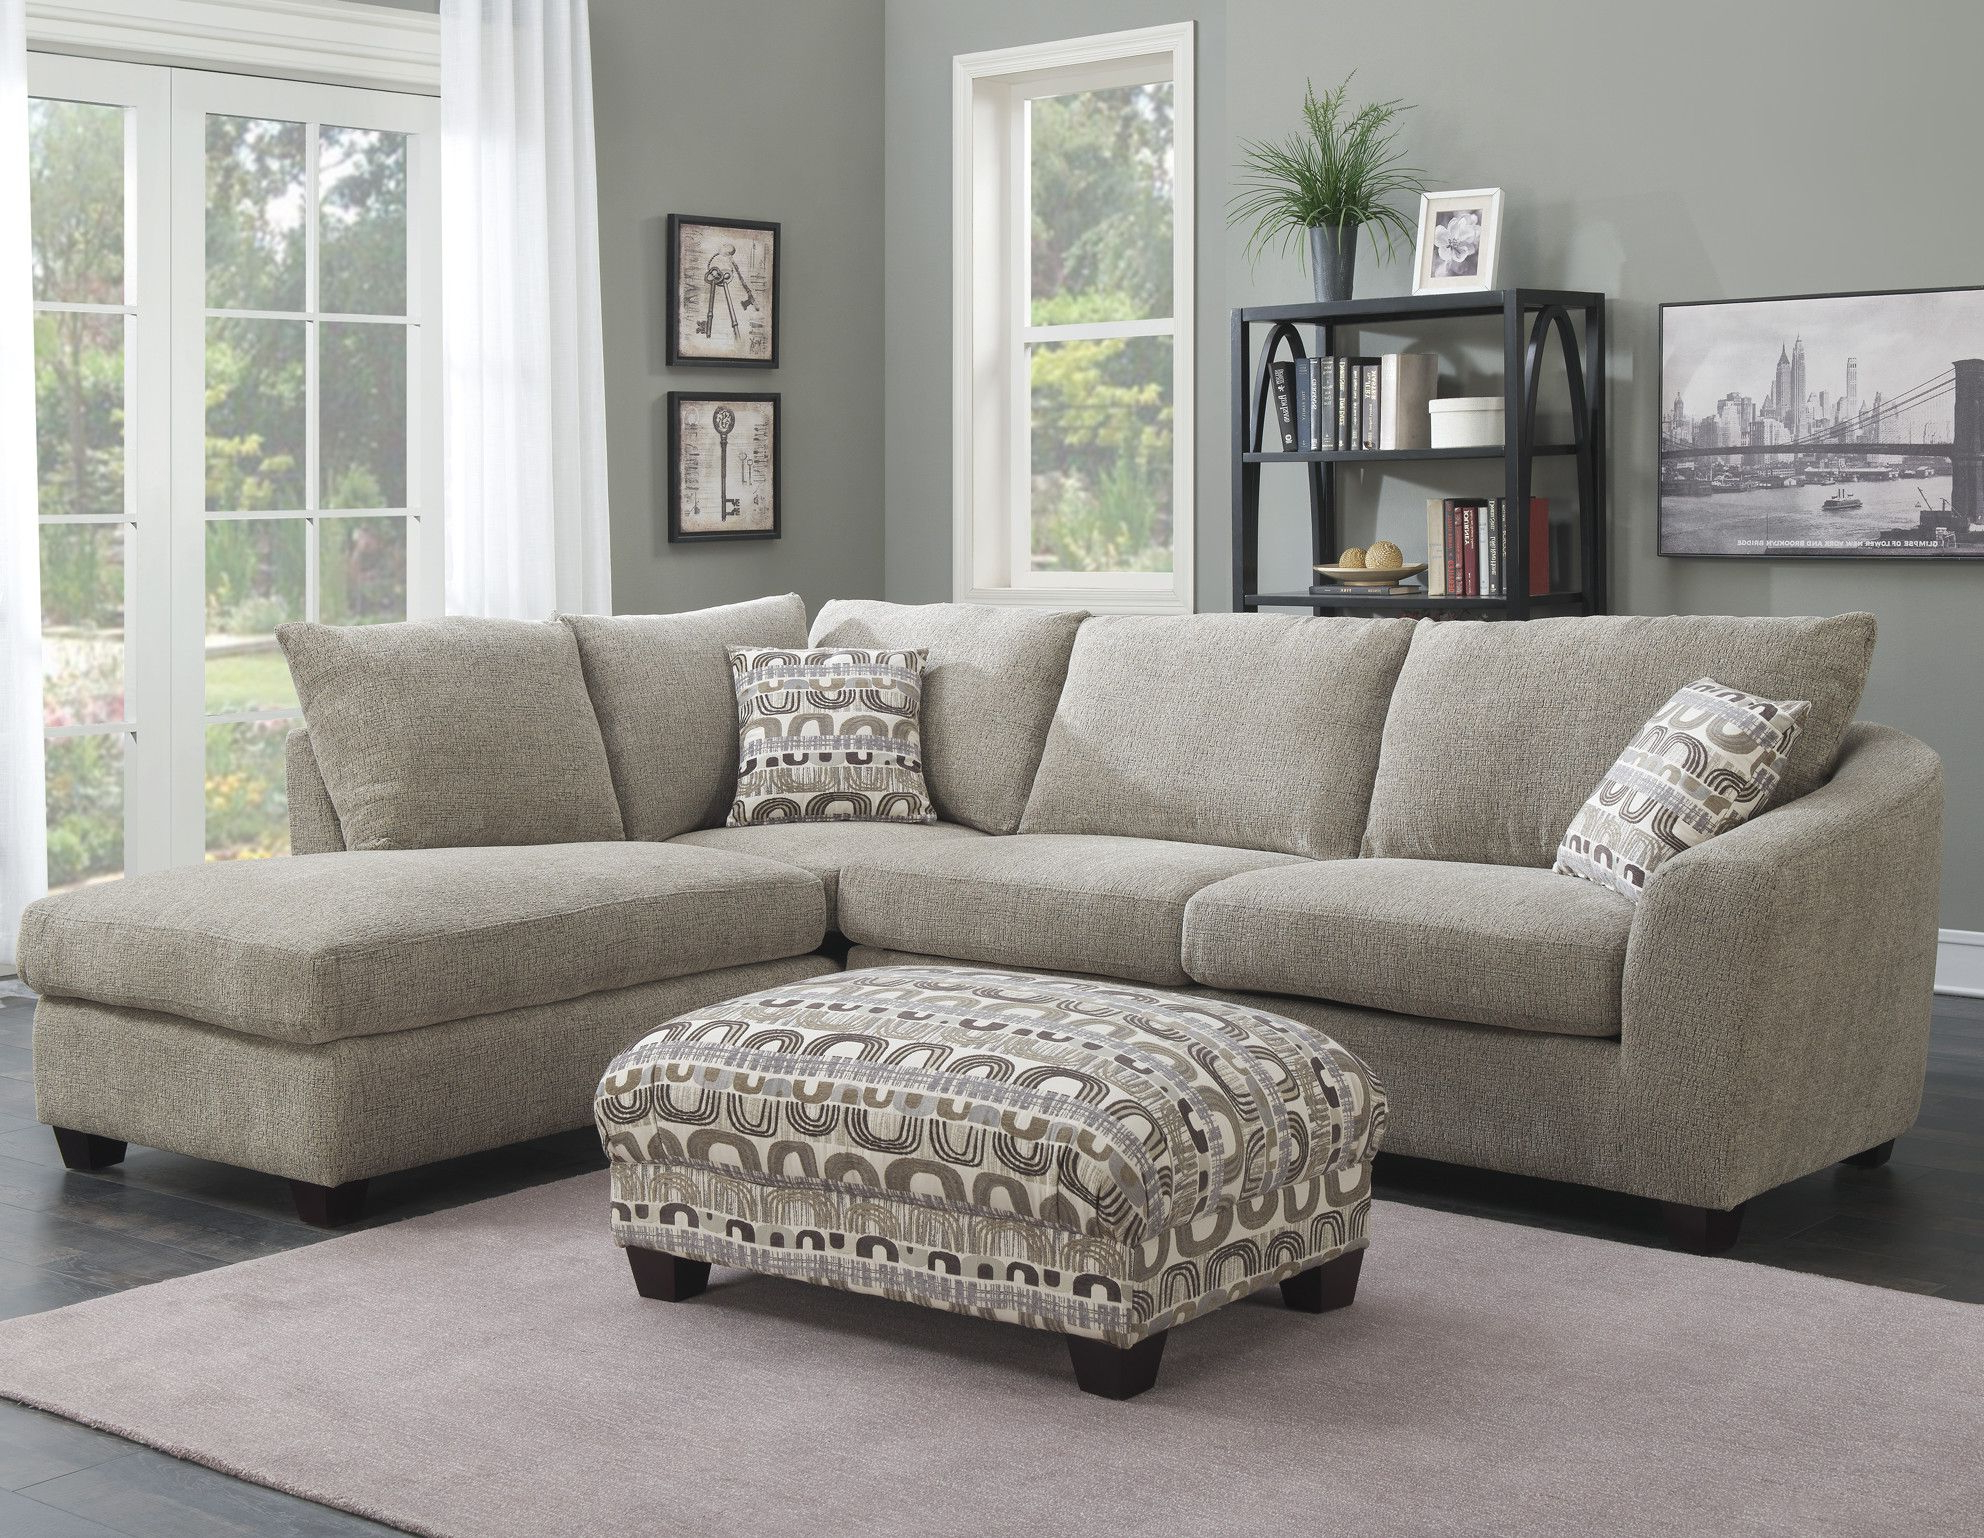 Pin On Living Room Ideas With Regard To Well Known Monet Right Facing Sectional Sofas (View 13 of 25)